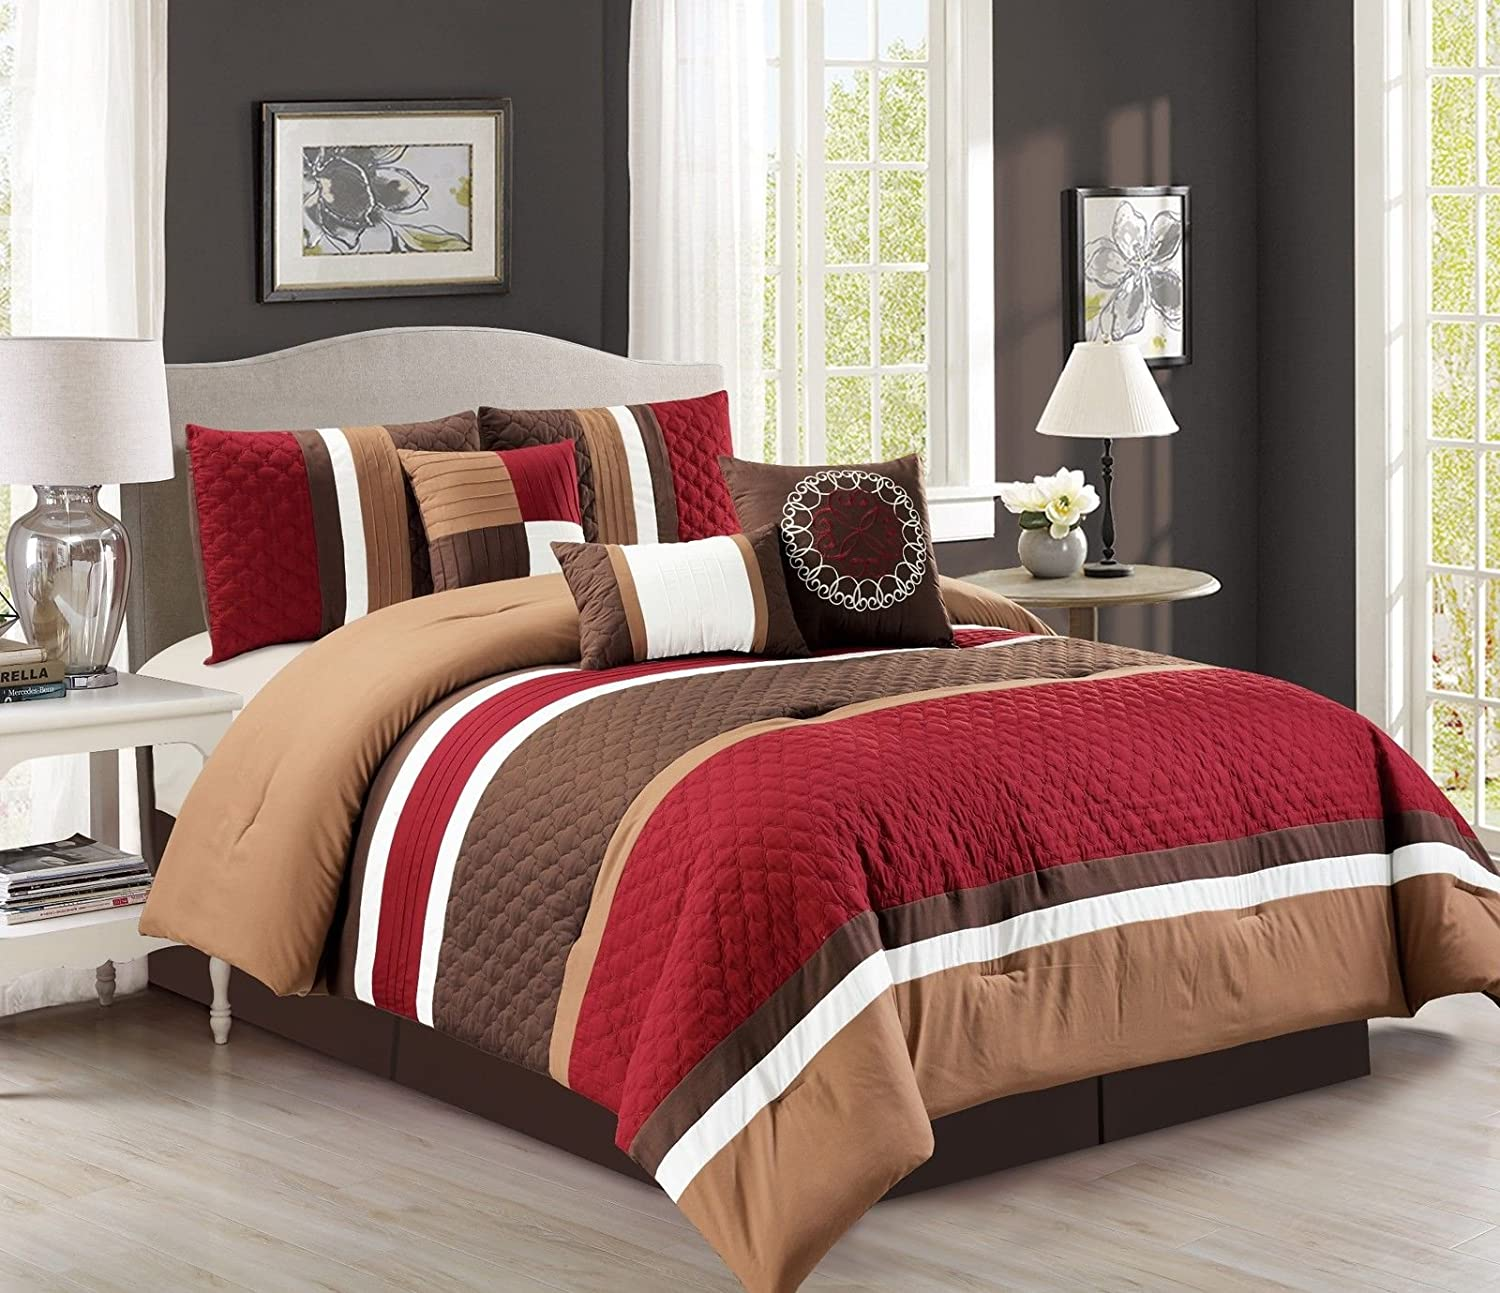 Brown and red bedding - Chezmoi Collection Boston 7 Piece Pinsonic Quilted Trellis Quatrefoil Design Striped Pleated Bedding Comforter Set